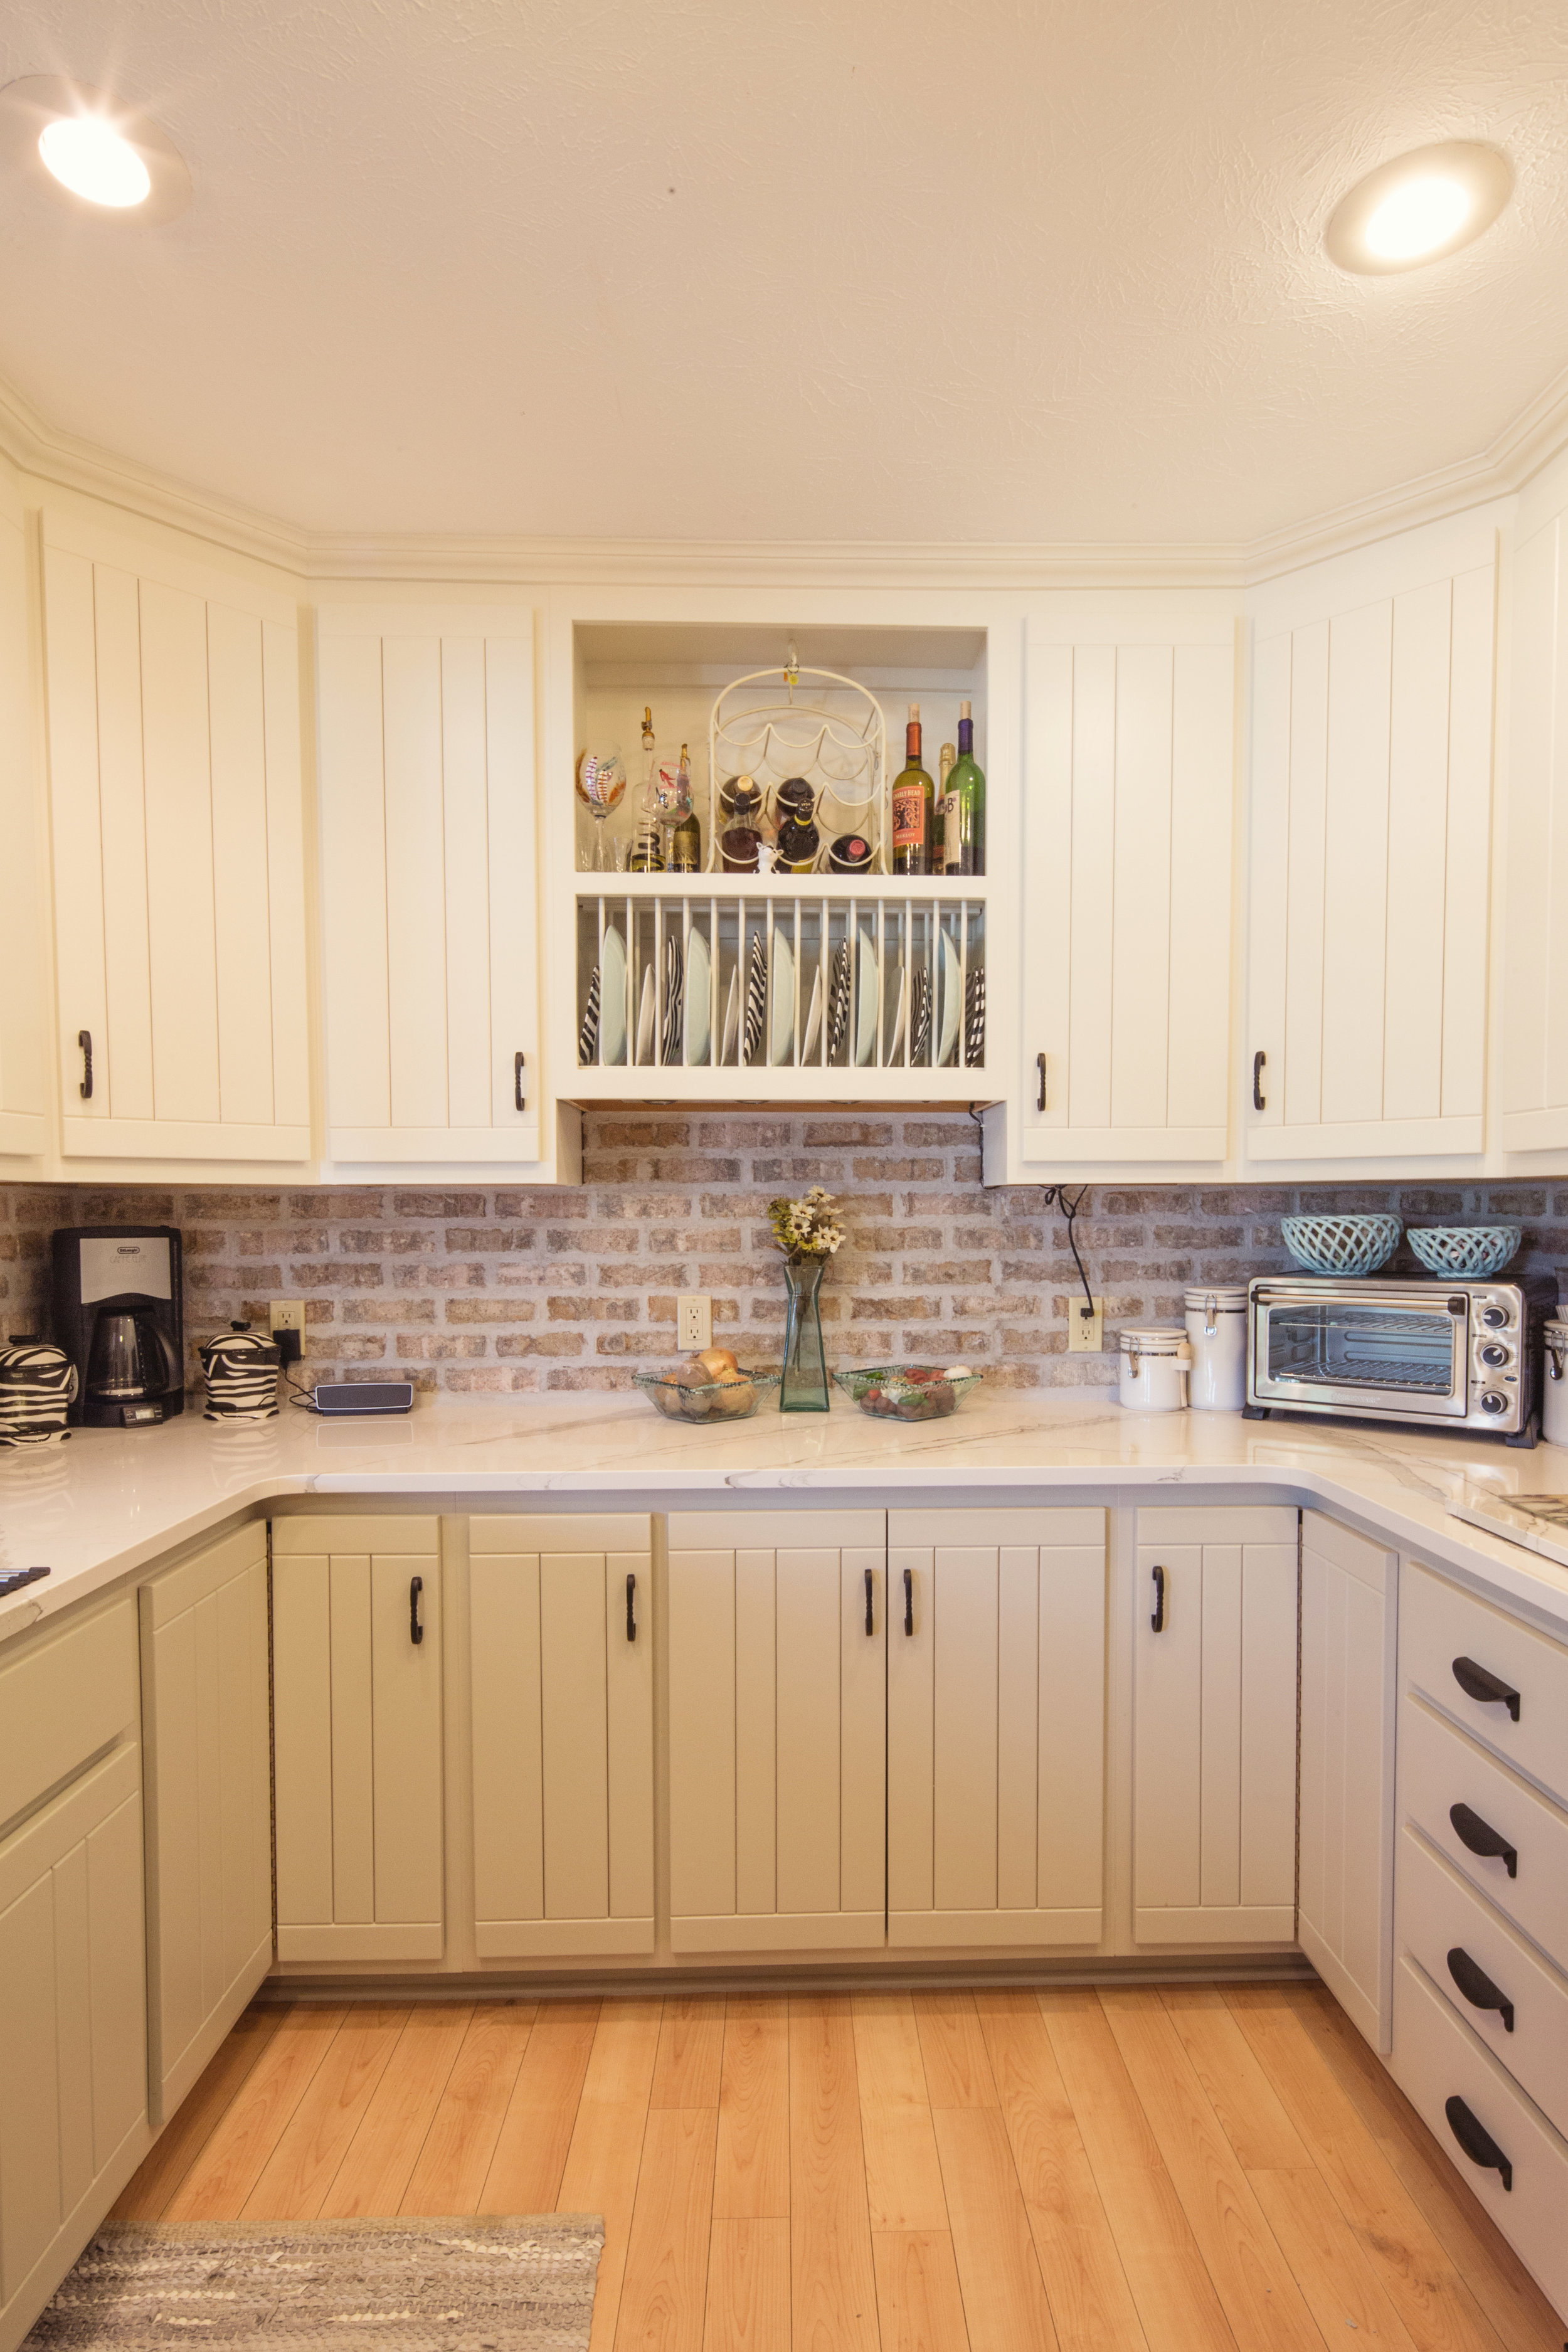 color-theory-painting-cabinets-8.jpg